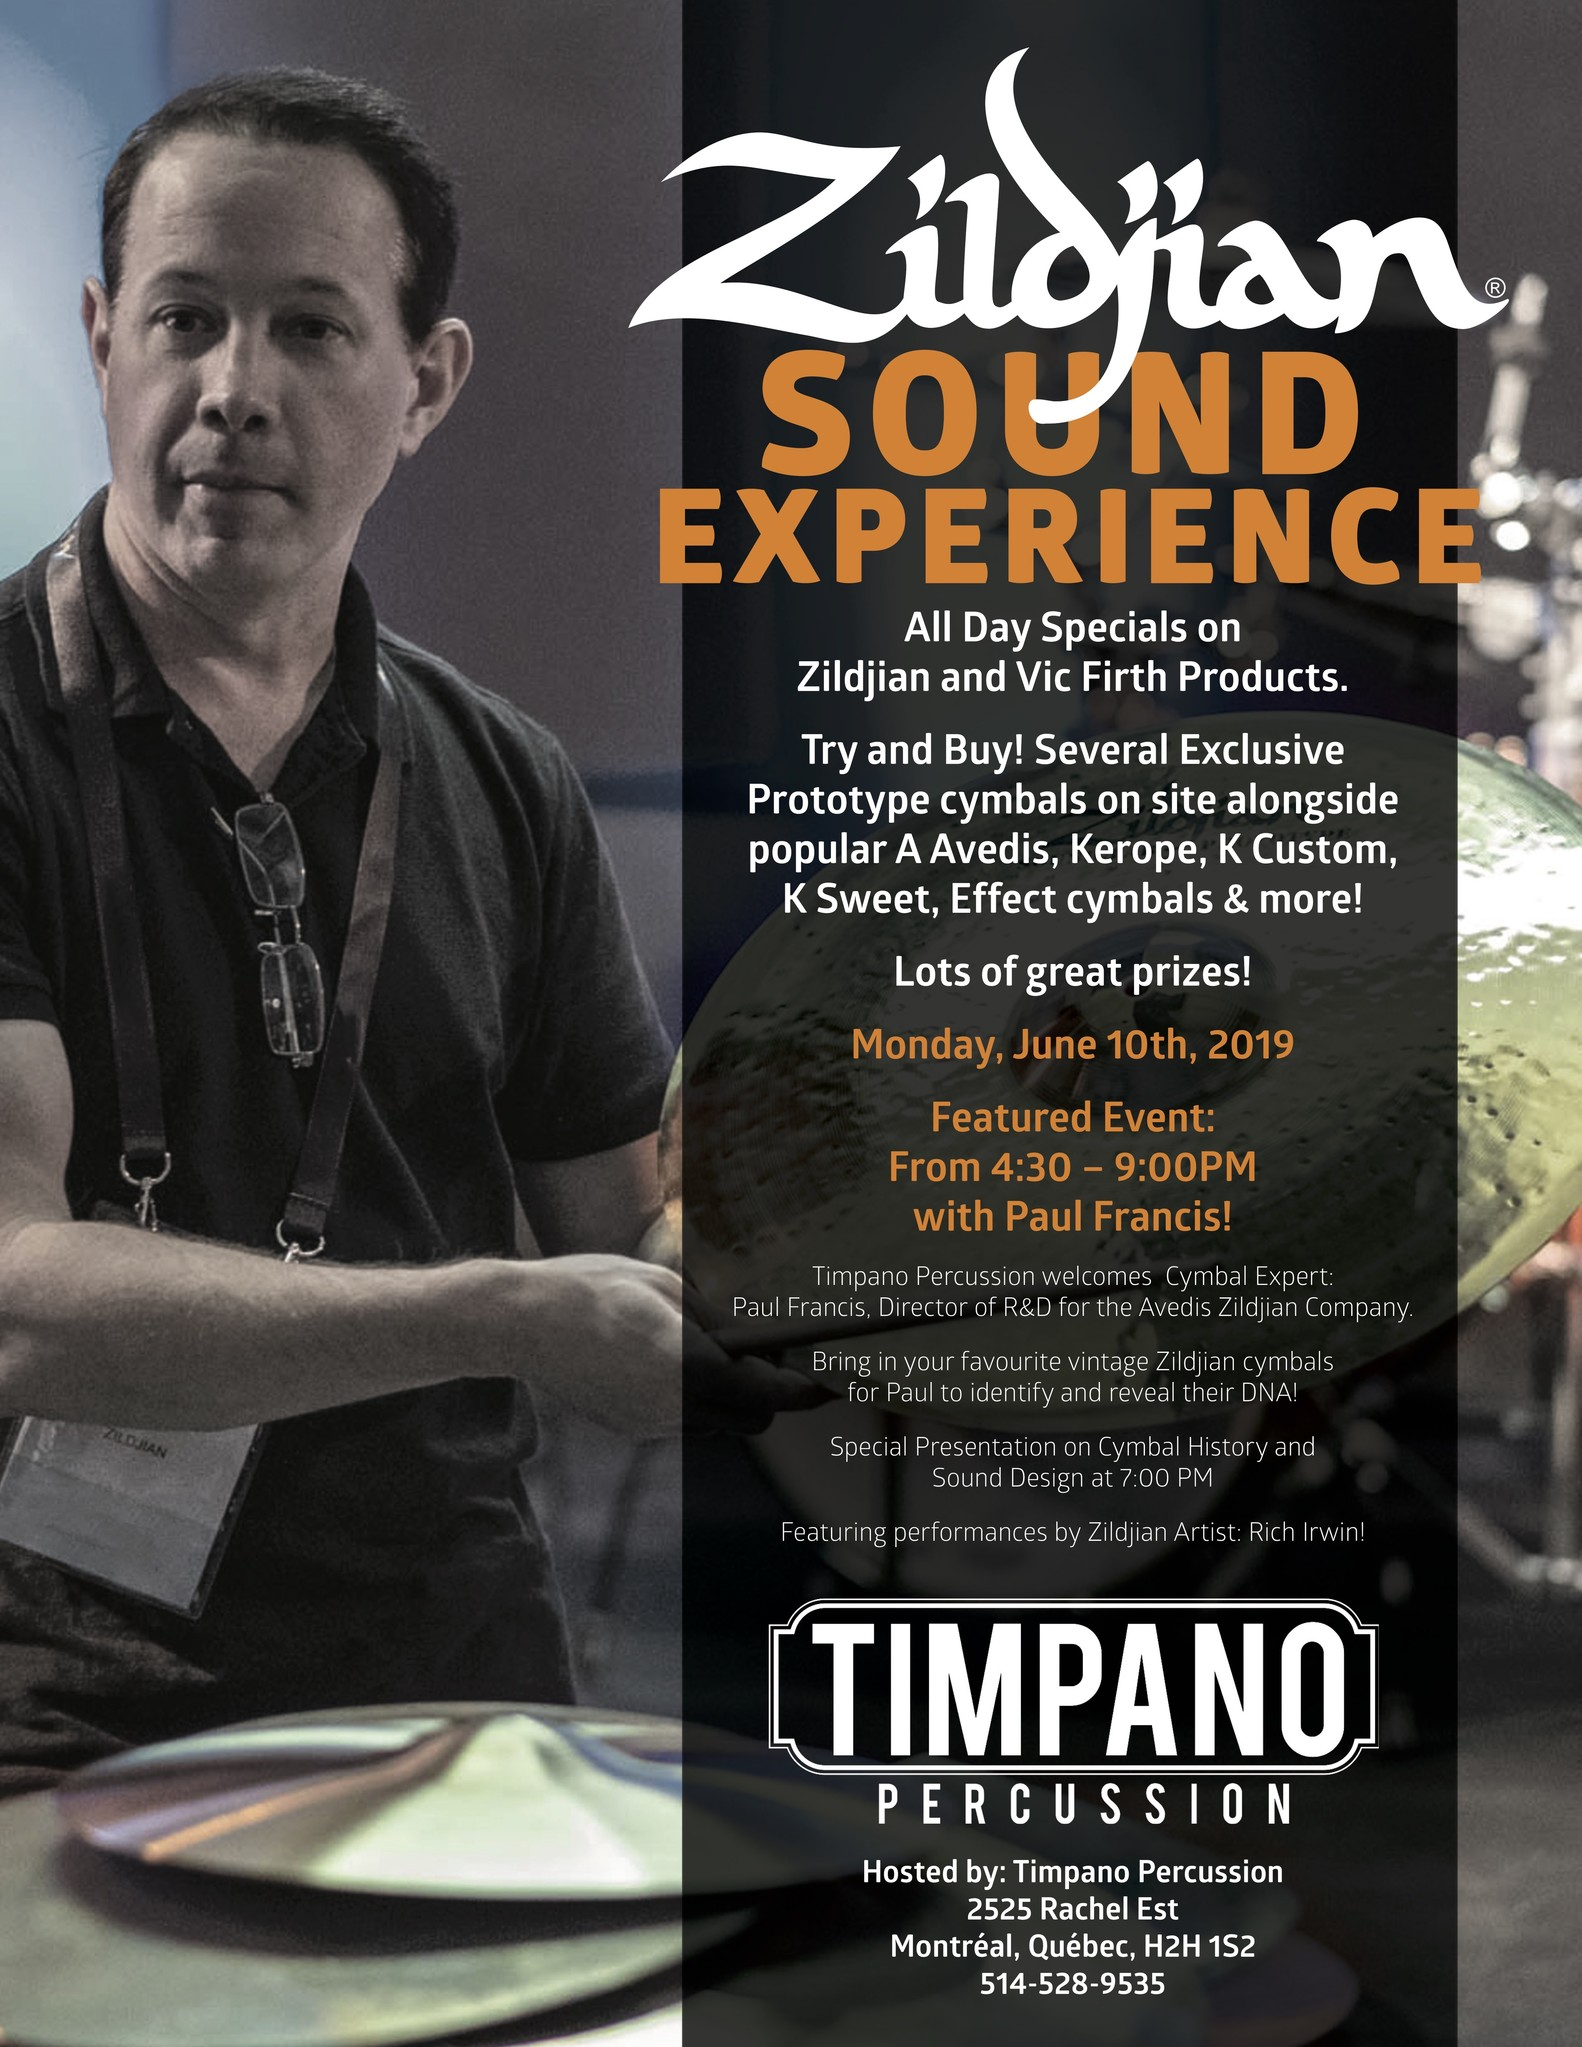 Zildjian Sound Experience Day with Paul Francis